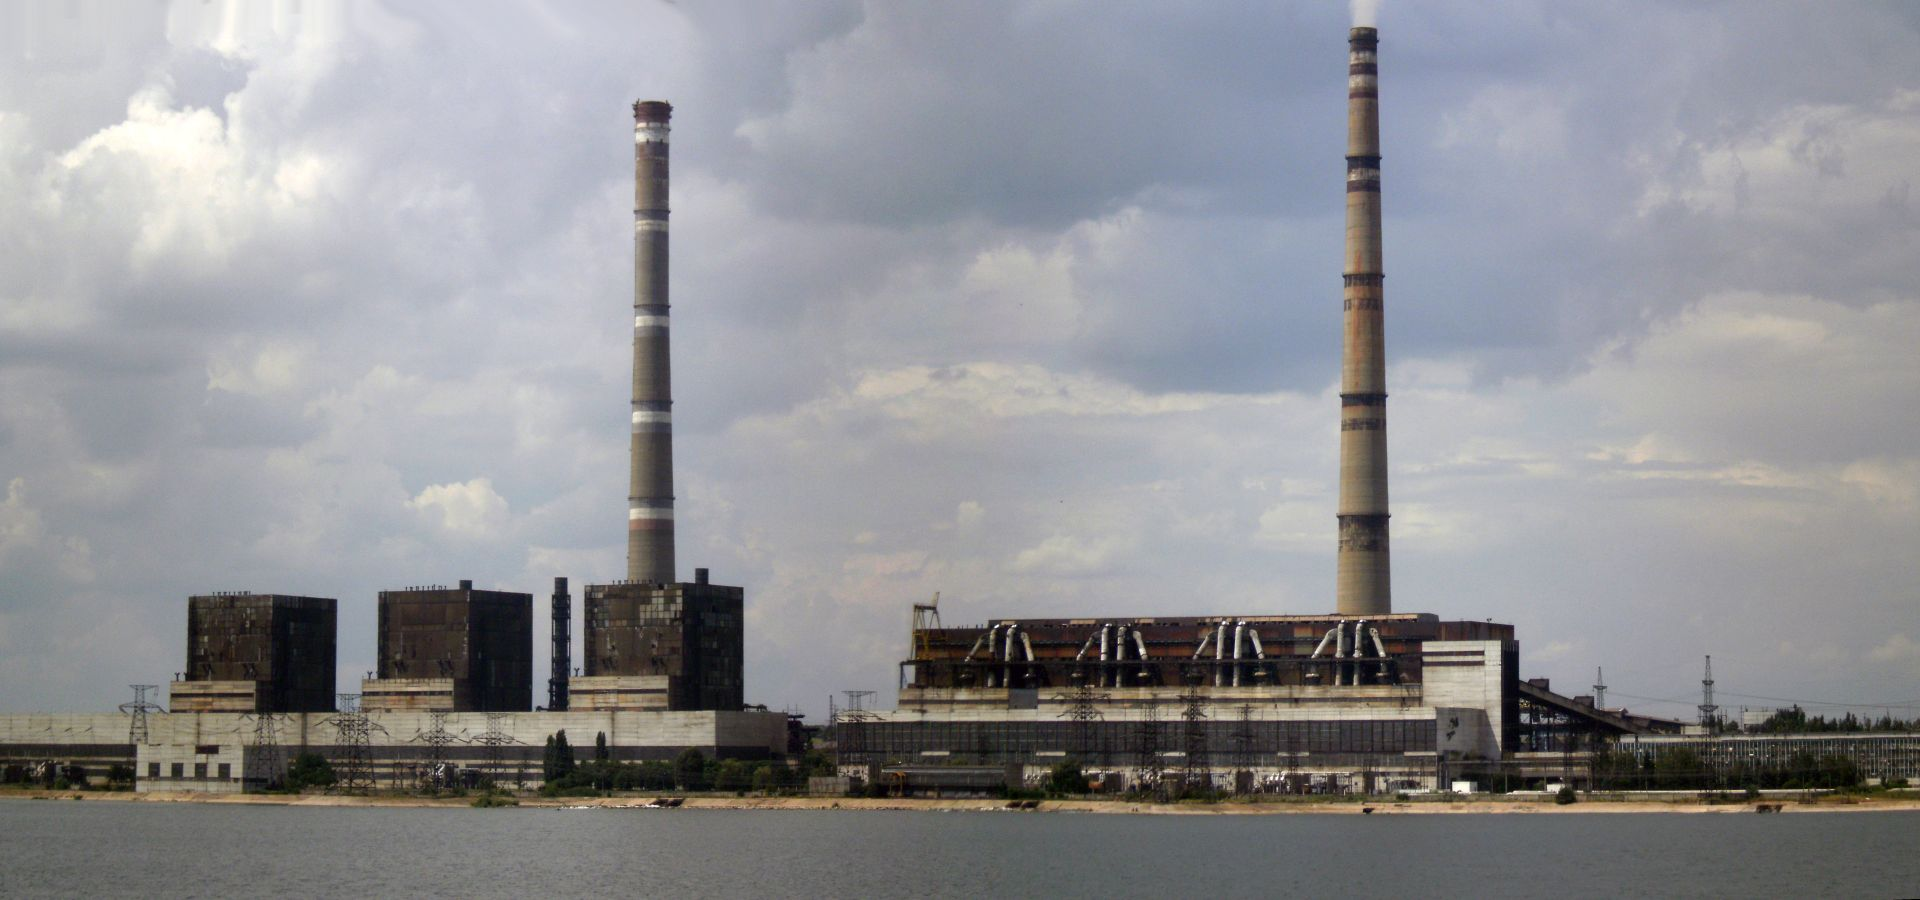 Vuhlehirska power station, coal-fired plant in Svitlodarsk, Ukraine